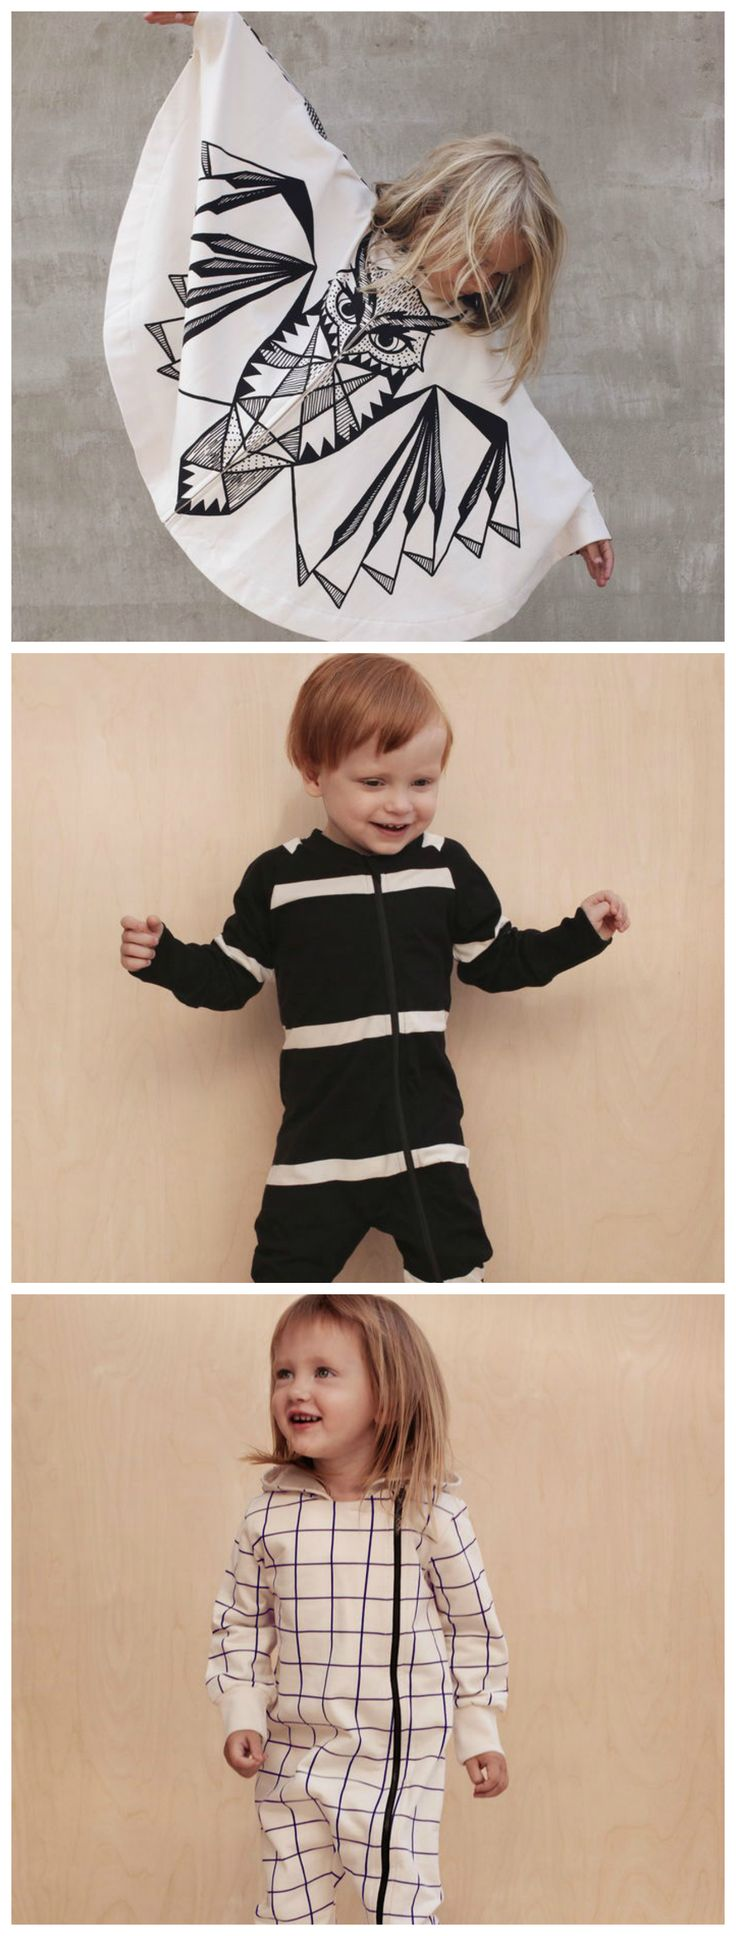 First Look: Mainio AW 14/15 - Petit & Small